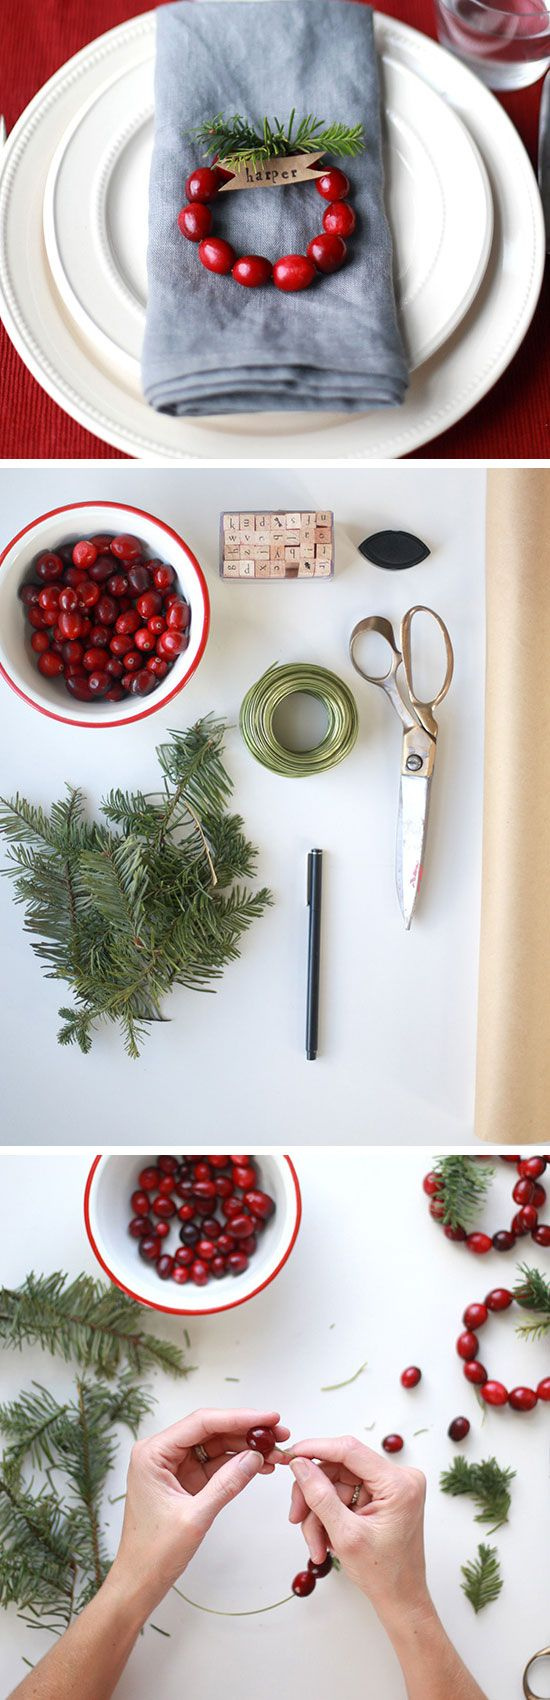 Add a little extra holiday touch to your next Christmas dinner party with this DIY cranberry wreath place card.: